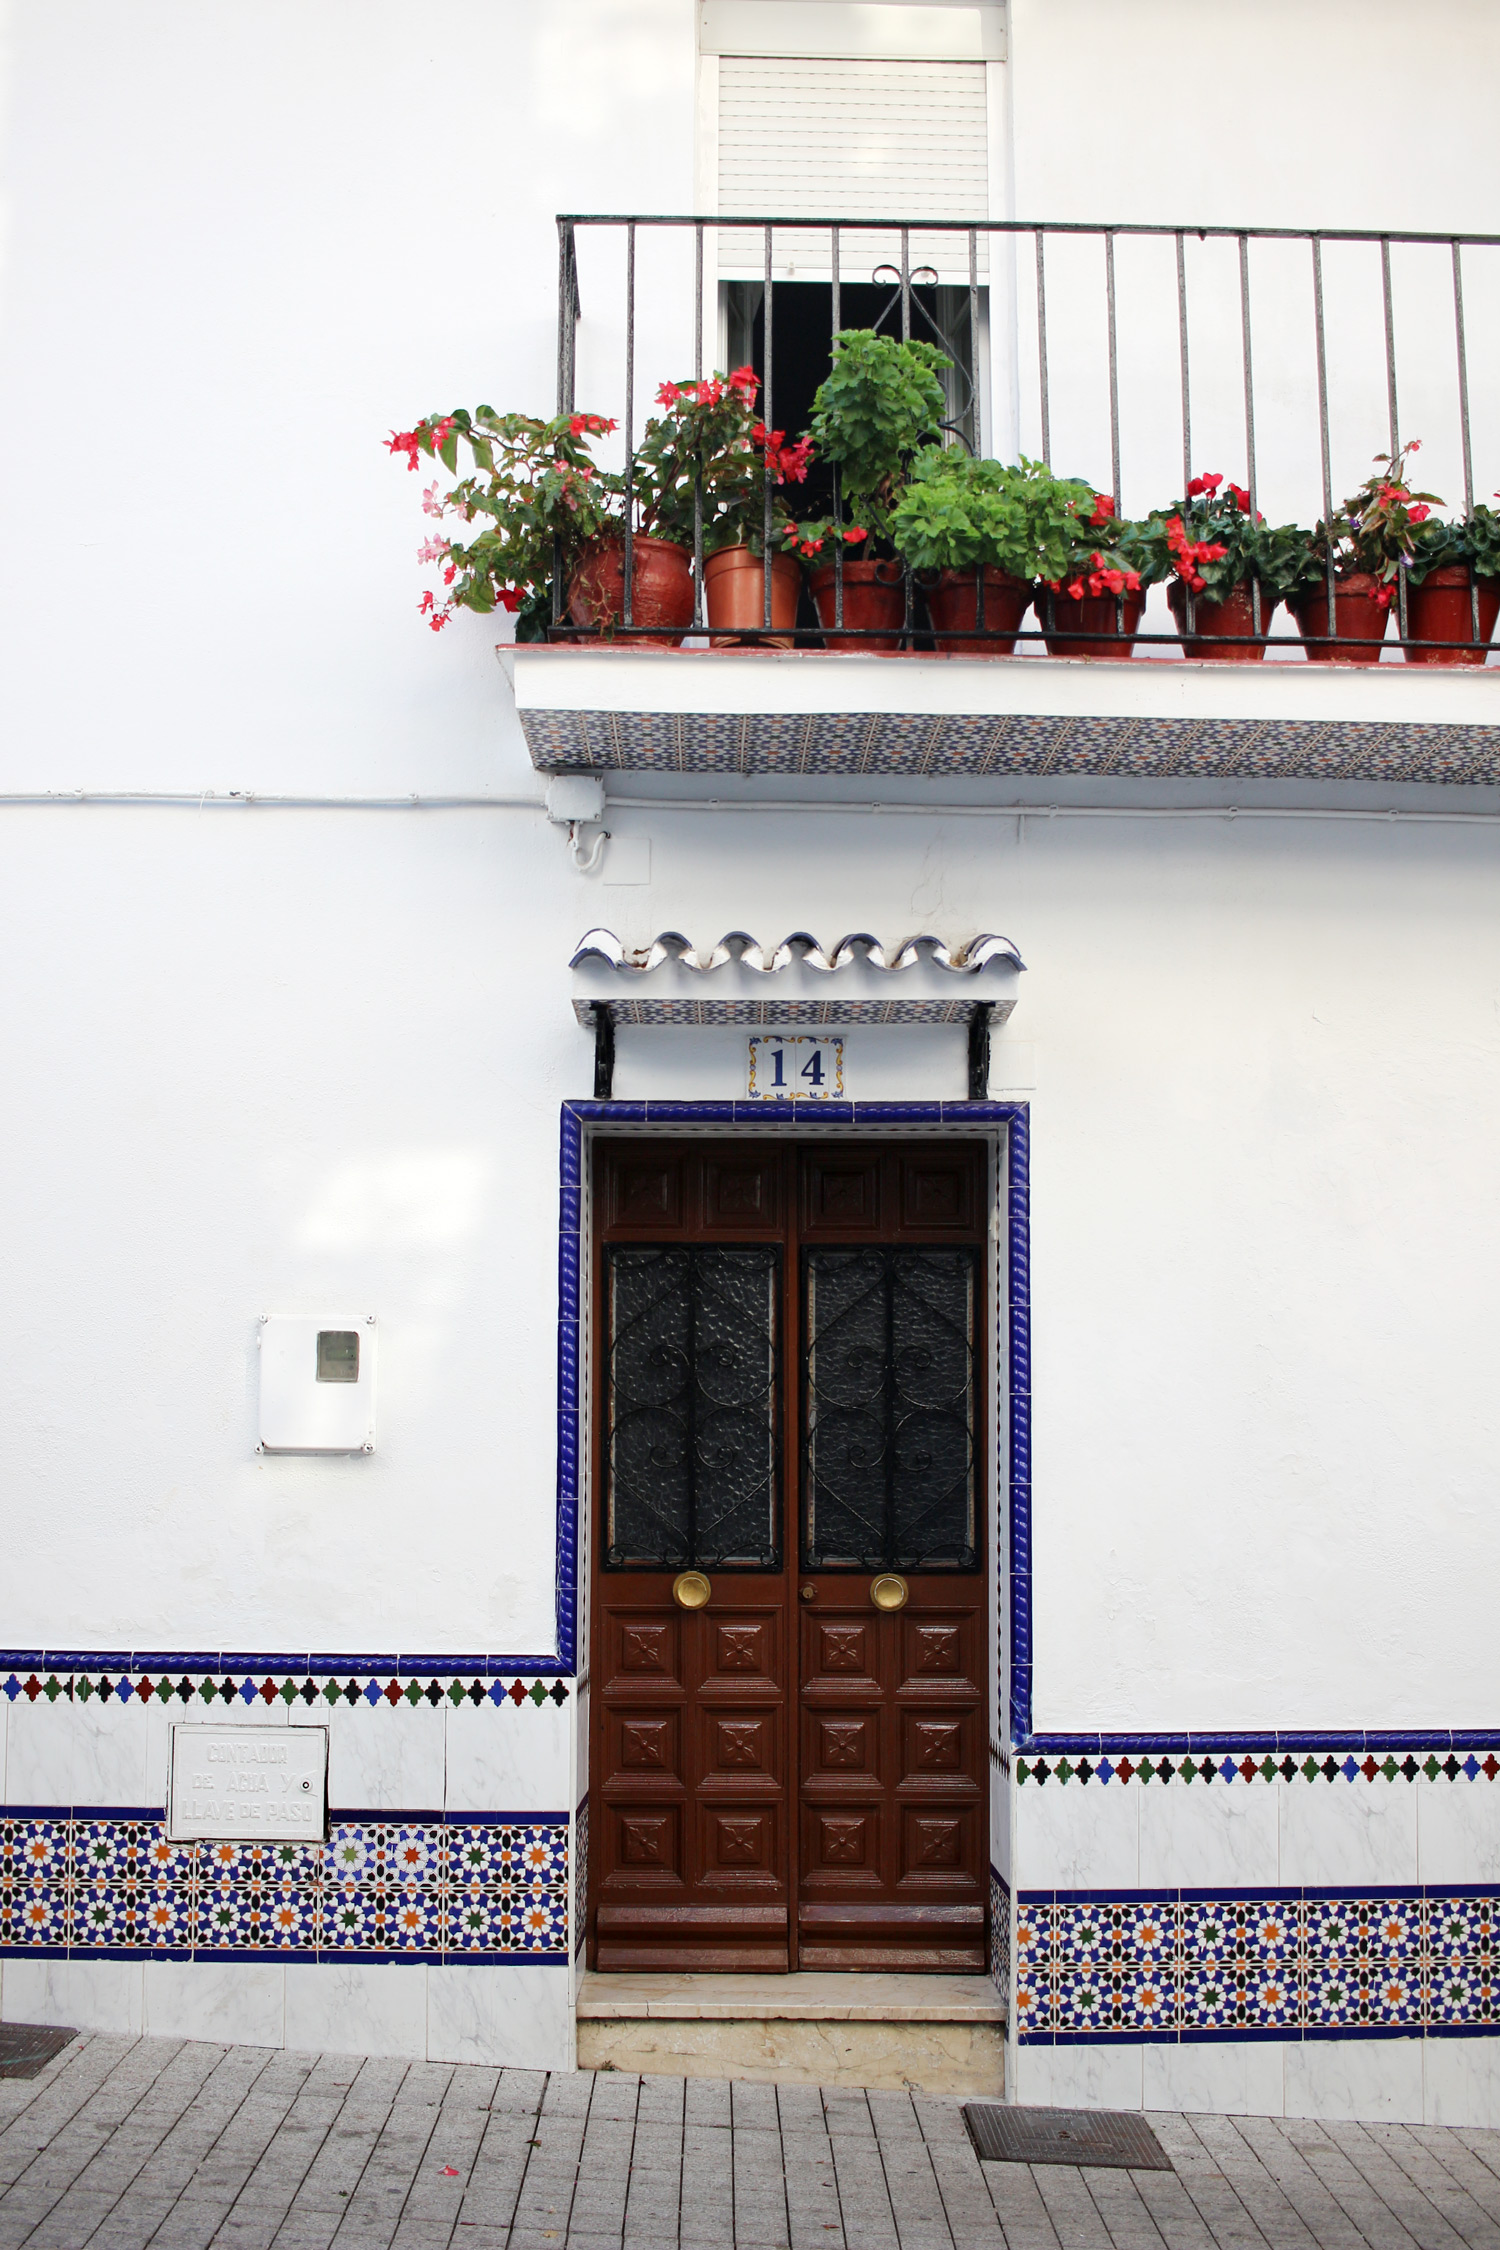 marbella-malaga-spain-travel-blogger-old-town-marbella-10